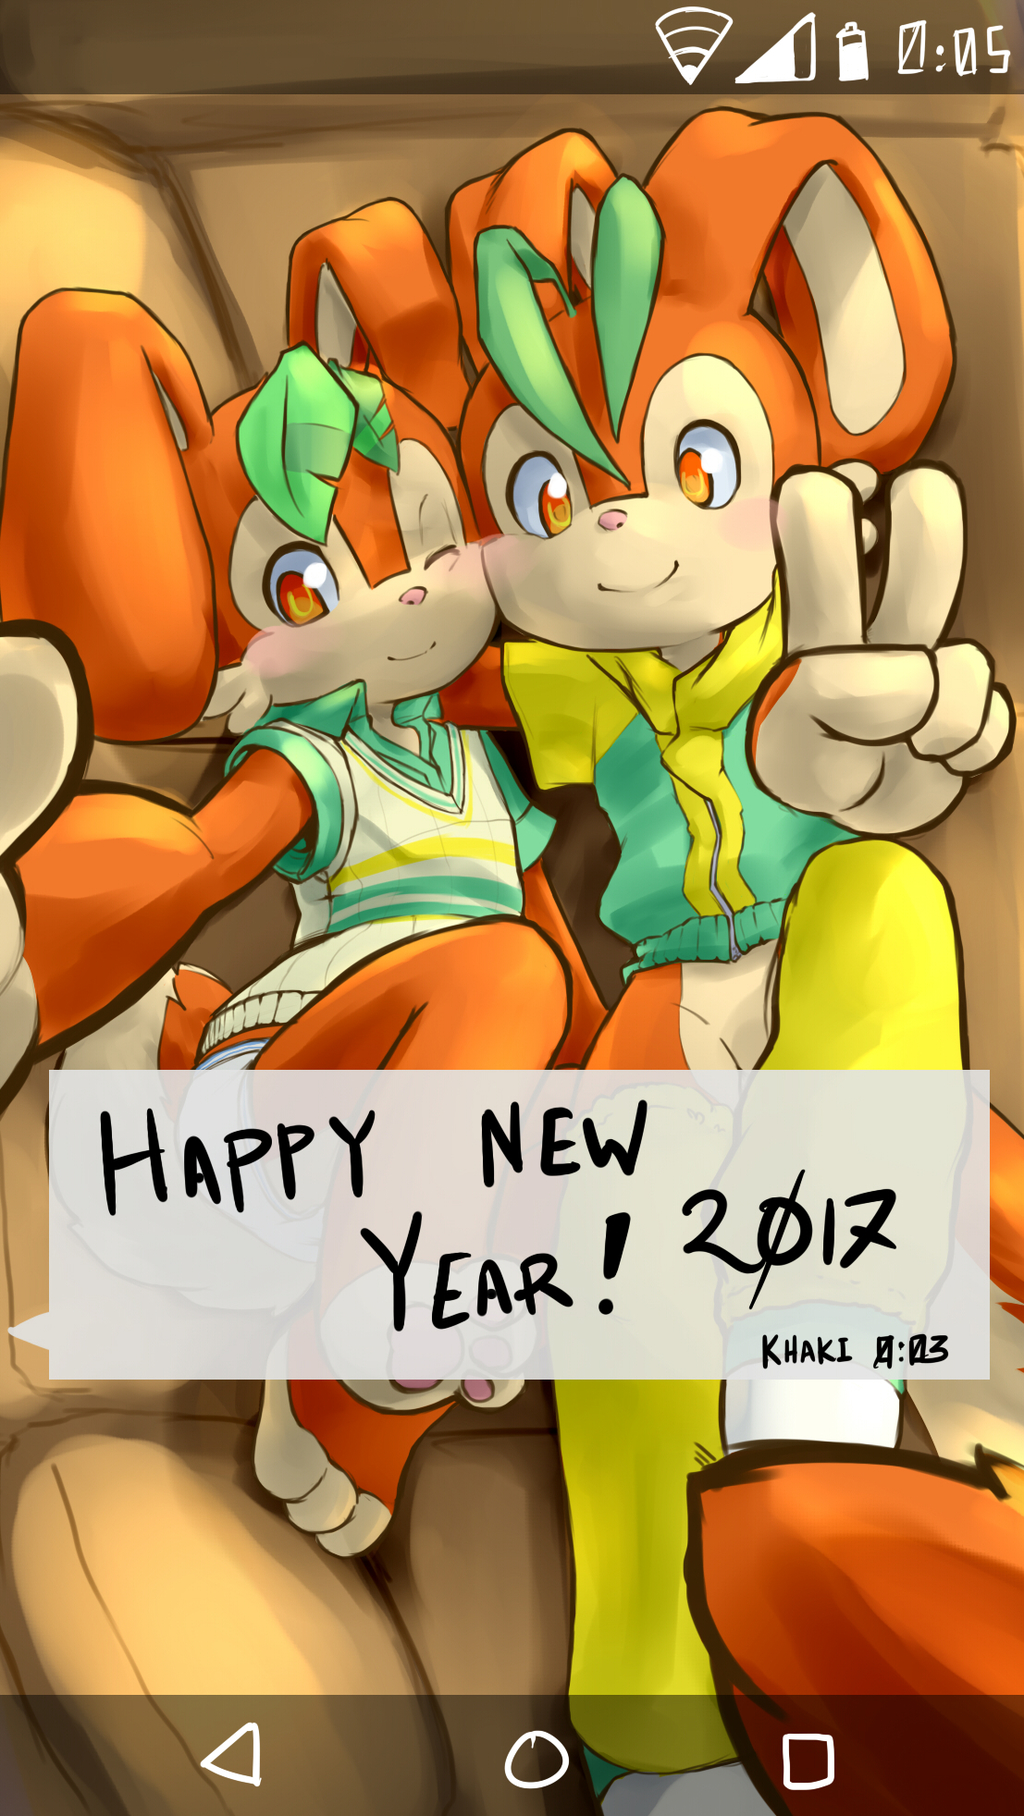 Happy New Year from Russet + Khaki